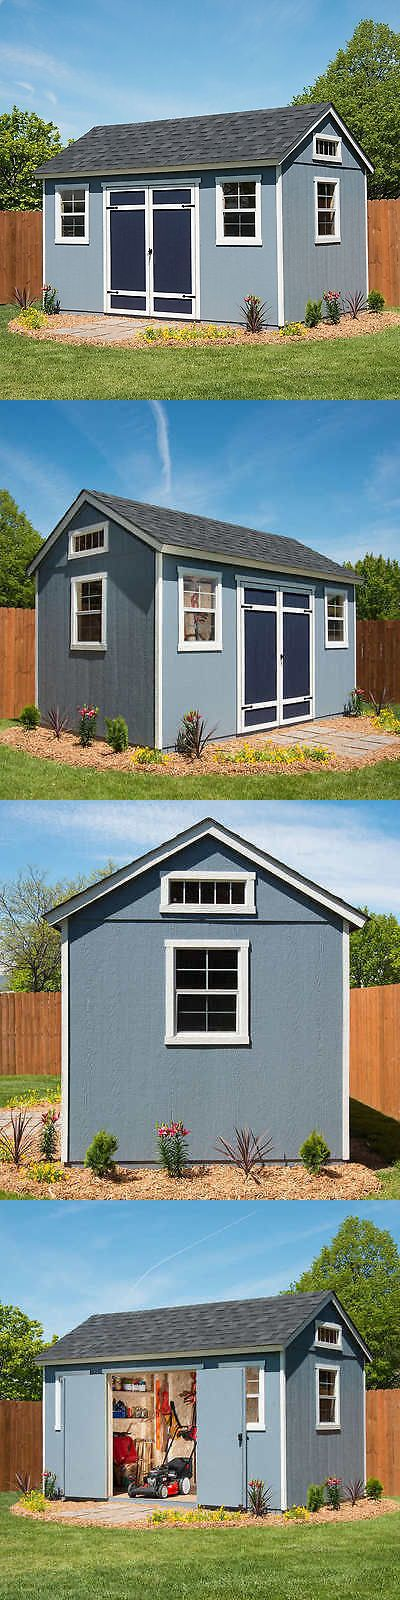 Garden and Storage Sheds 139956: Berkdale 14 X 8 Wood Shed 918 Cubic Feet, Floor Kit Included, No Tax -> BUY IT NOW ONLY: $1899.99 on eBay!